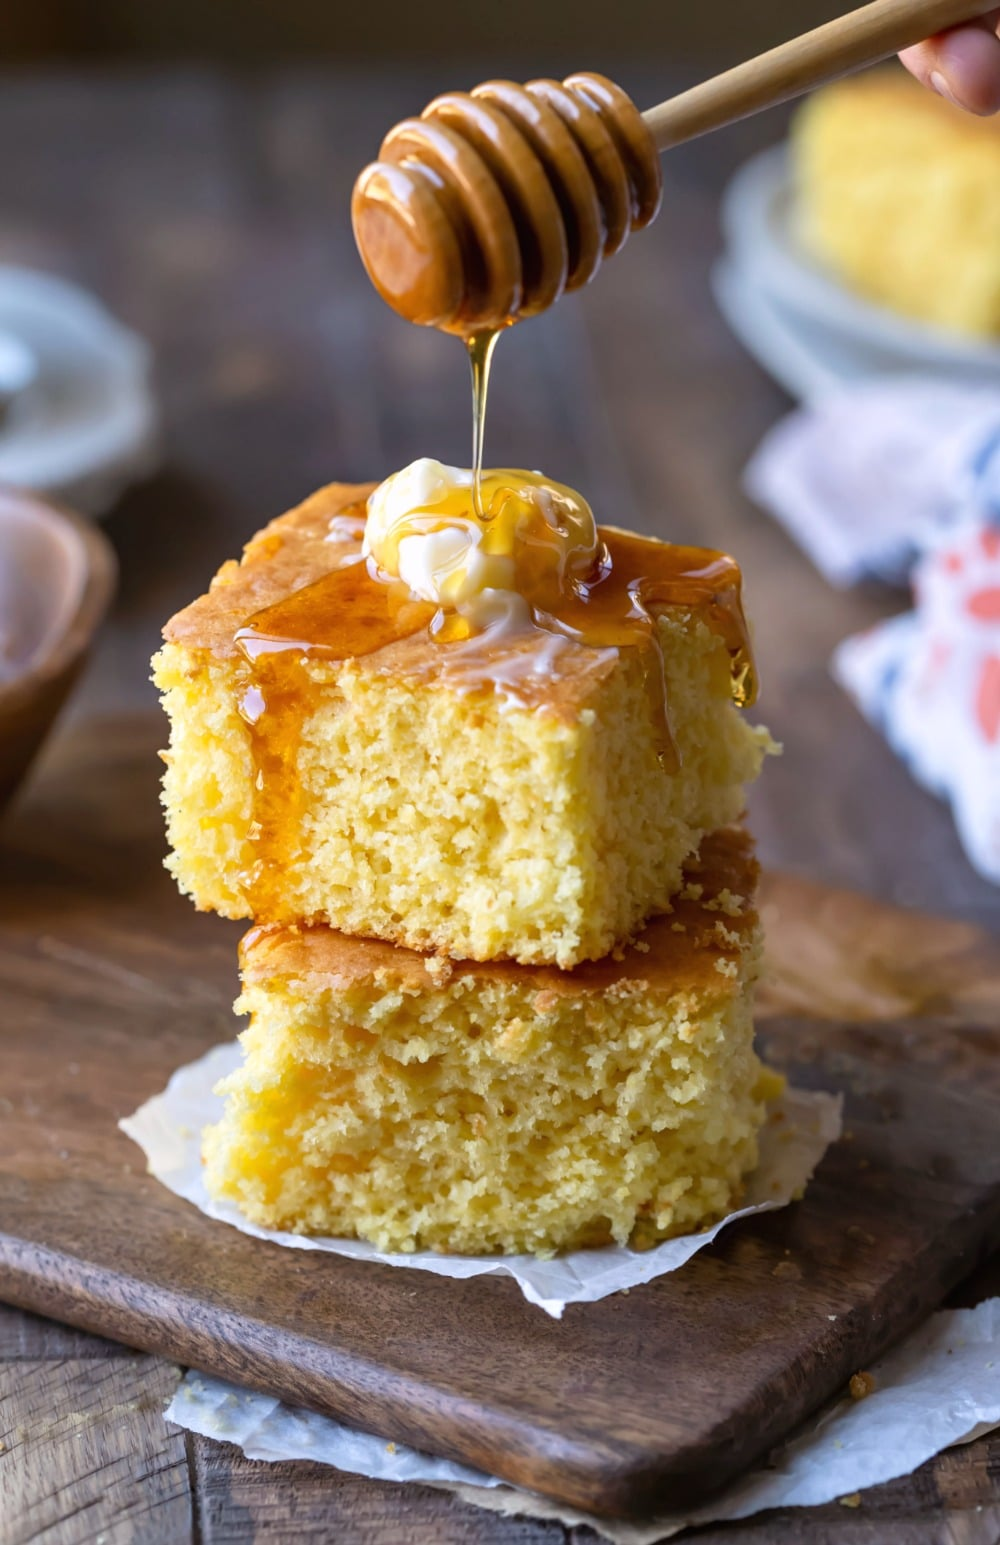 Stacked pieces of sweet cornbread with honey drizzled on top